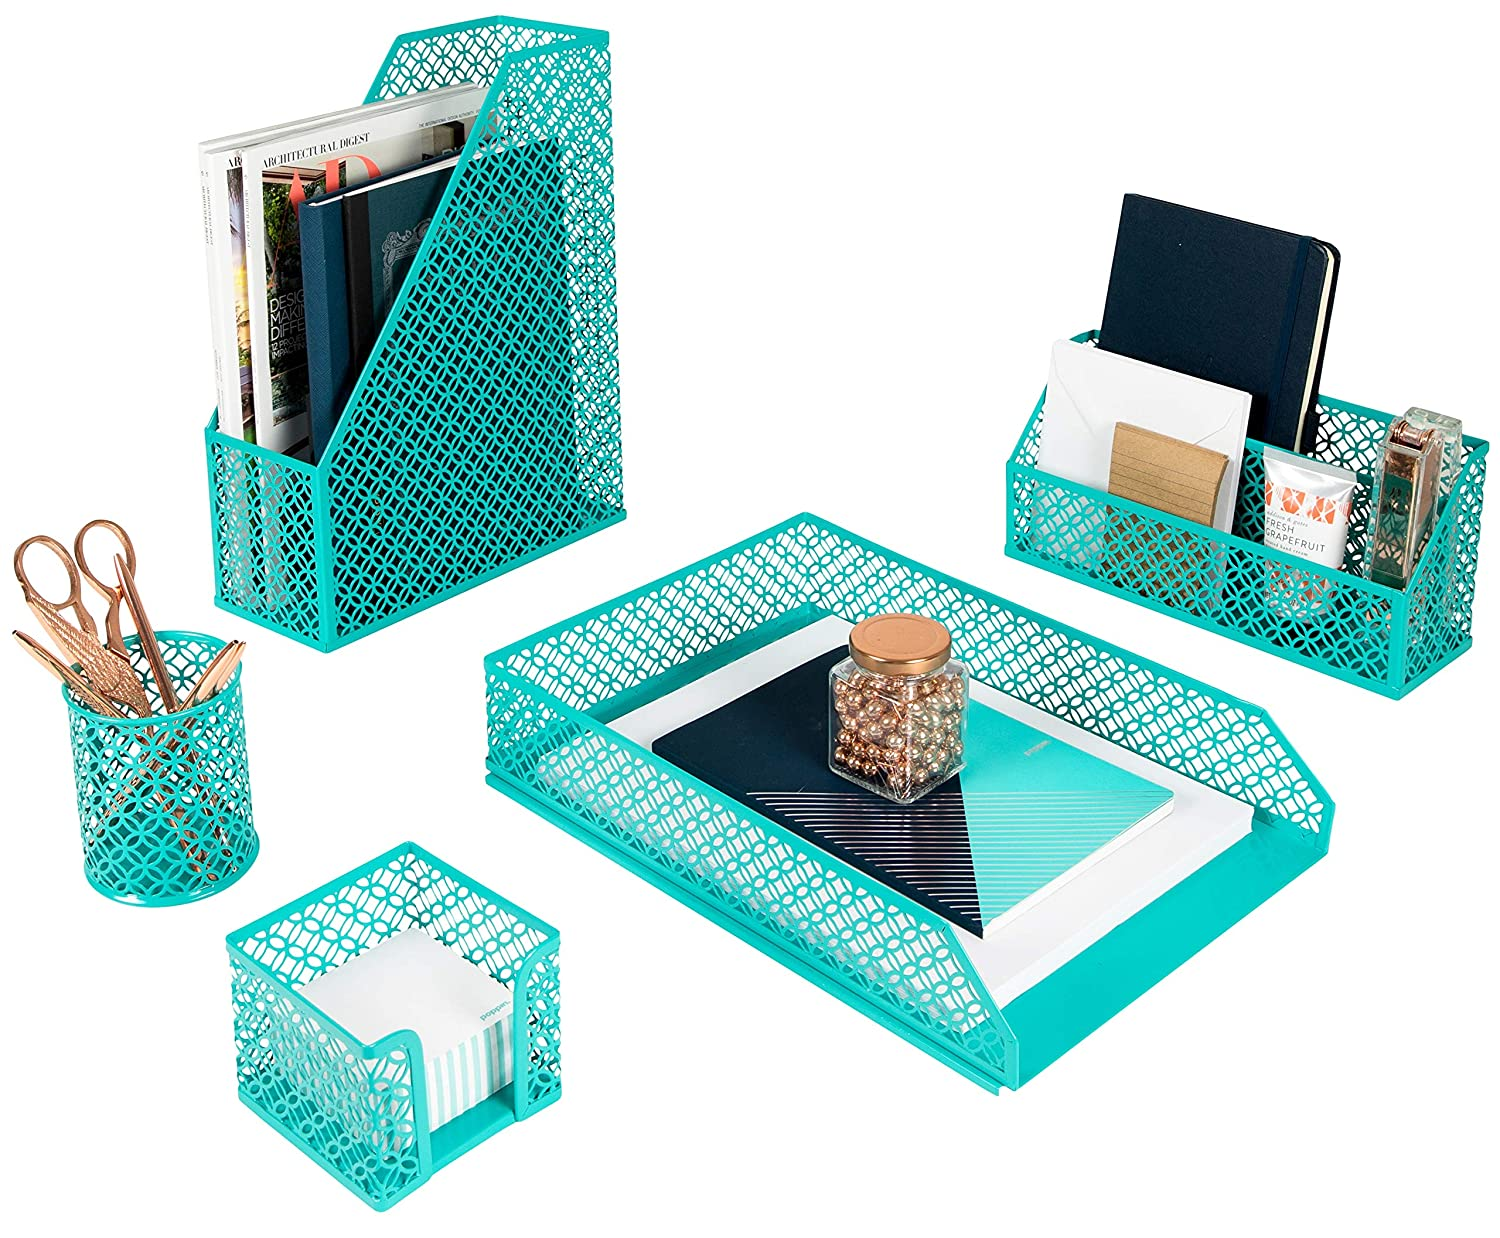 Blu Monaco 5 Piece Dark Teal Desk Organizer Set - Desk Organizers and Accessories for Women - Teal Desk Accessories - Desktop Organization